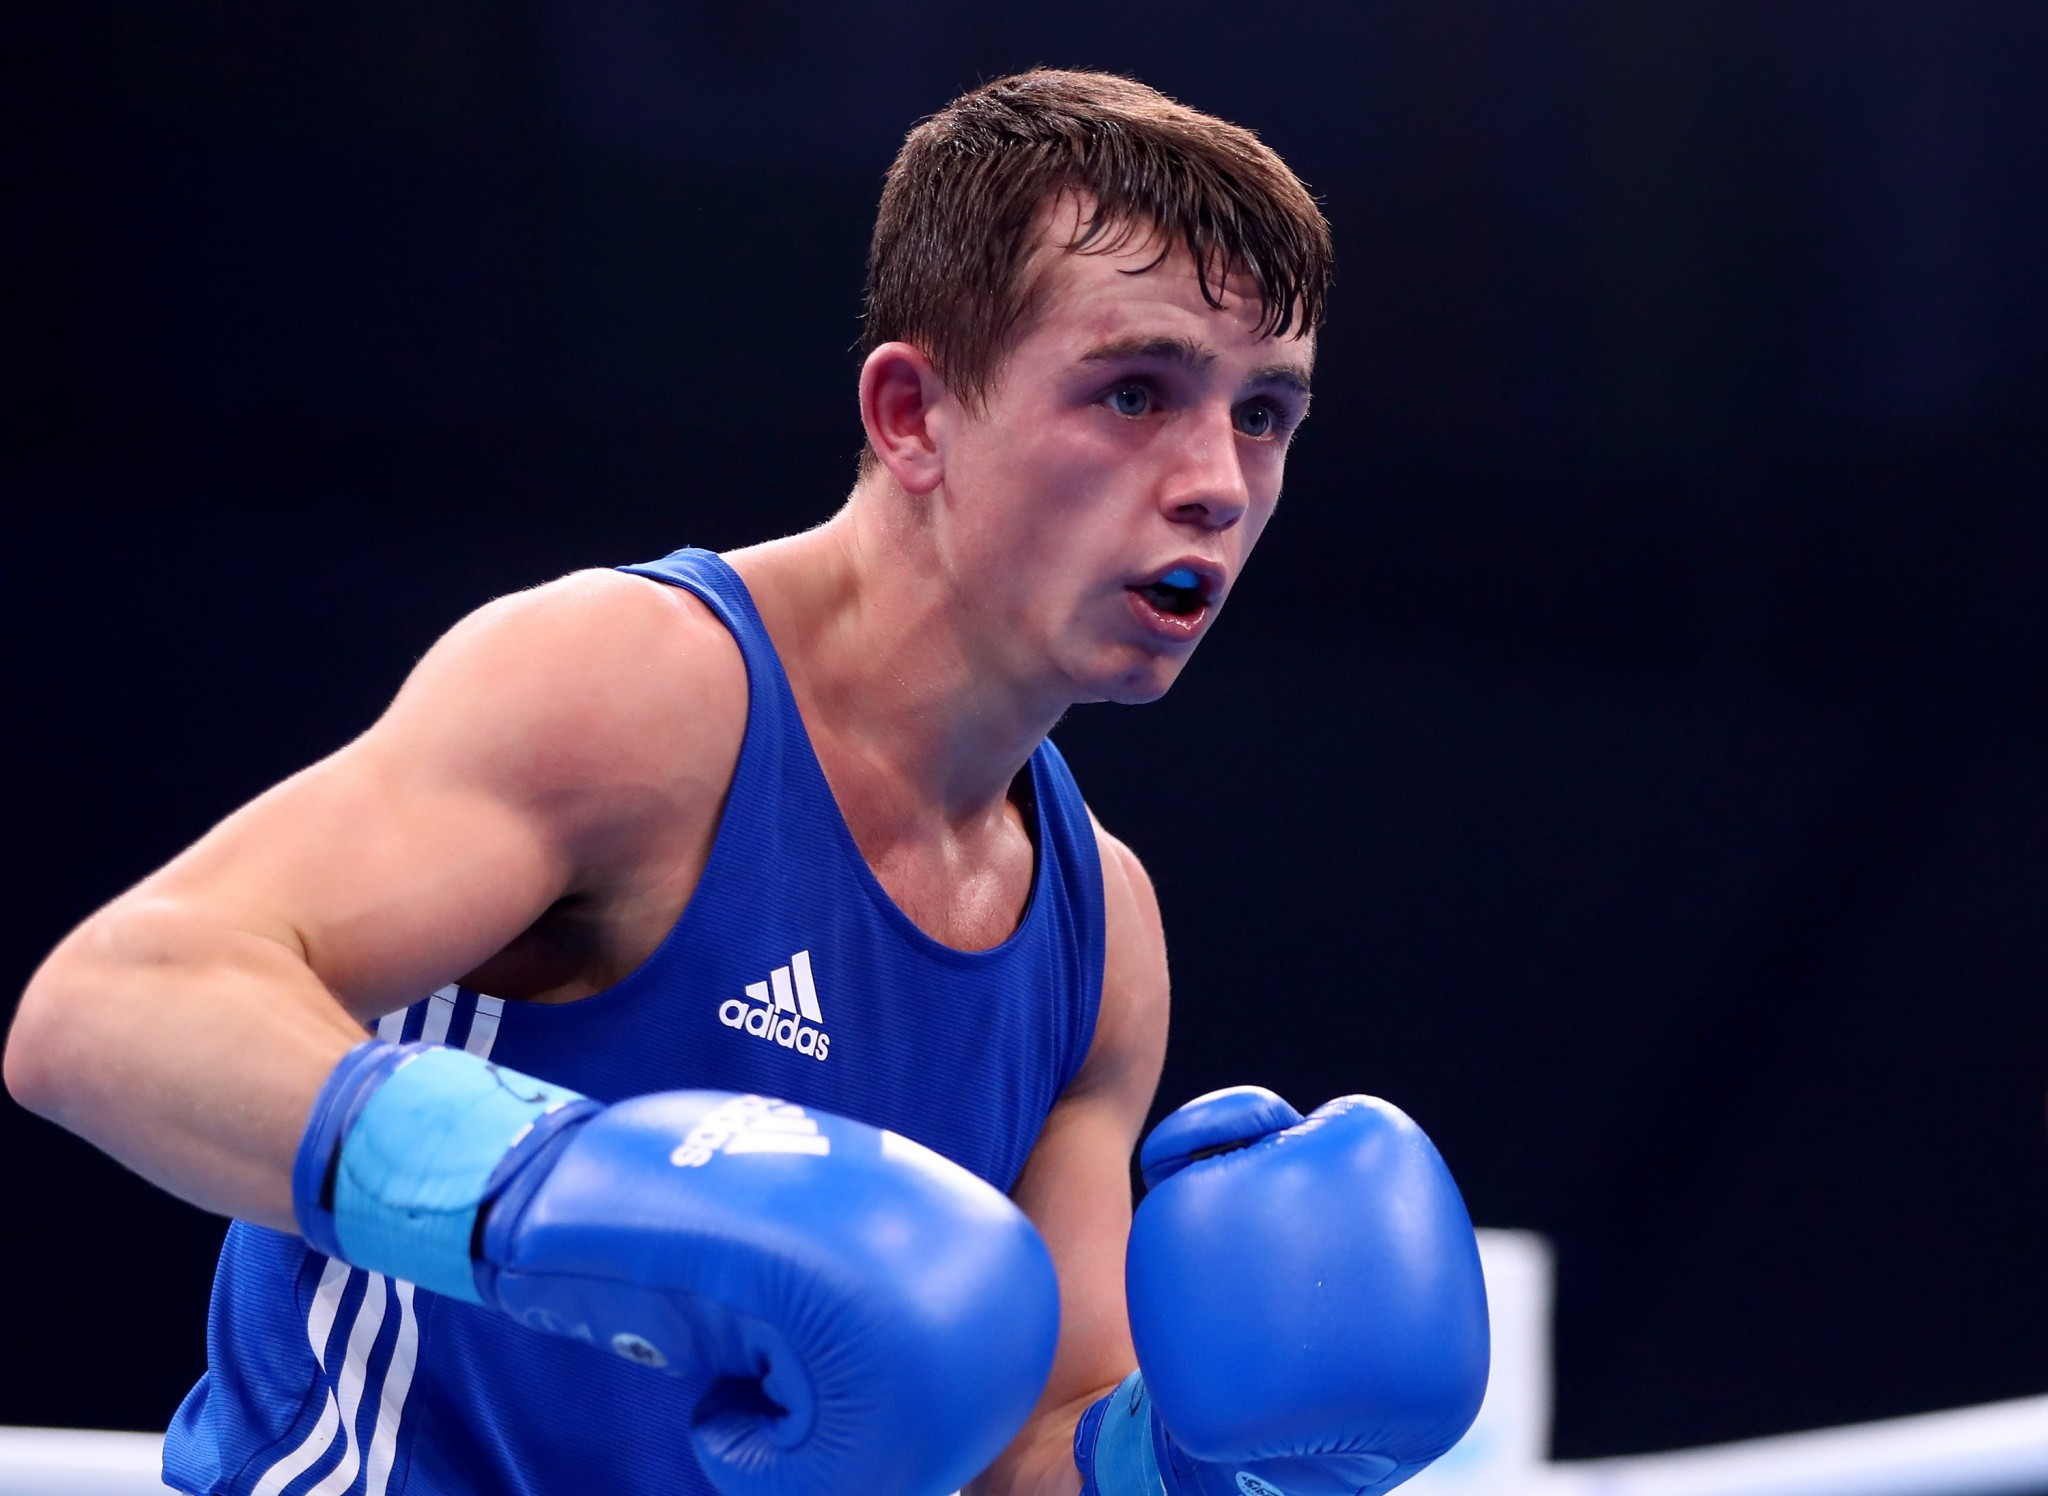 Peter McGrail was the only British medallist at the AIBA World Championships in Hamburg ©Getty Images